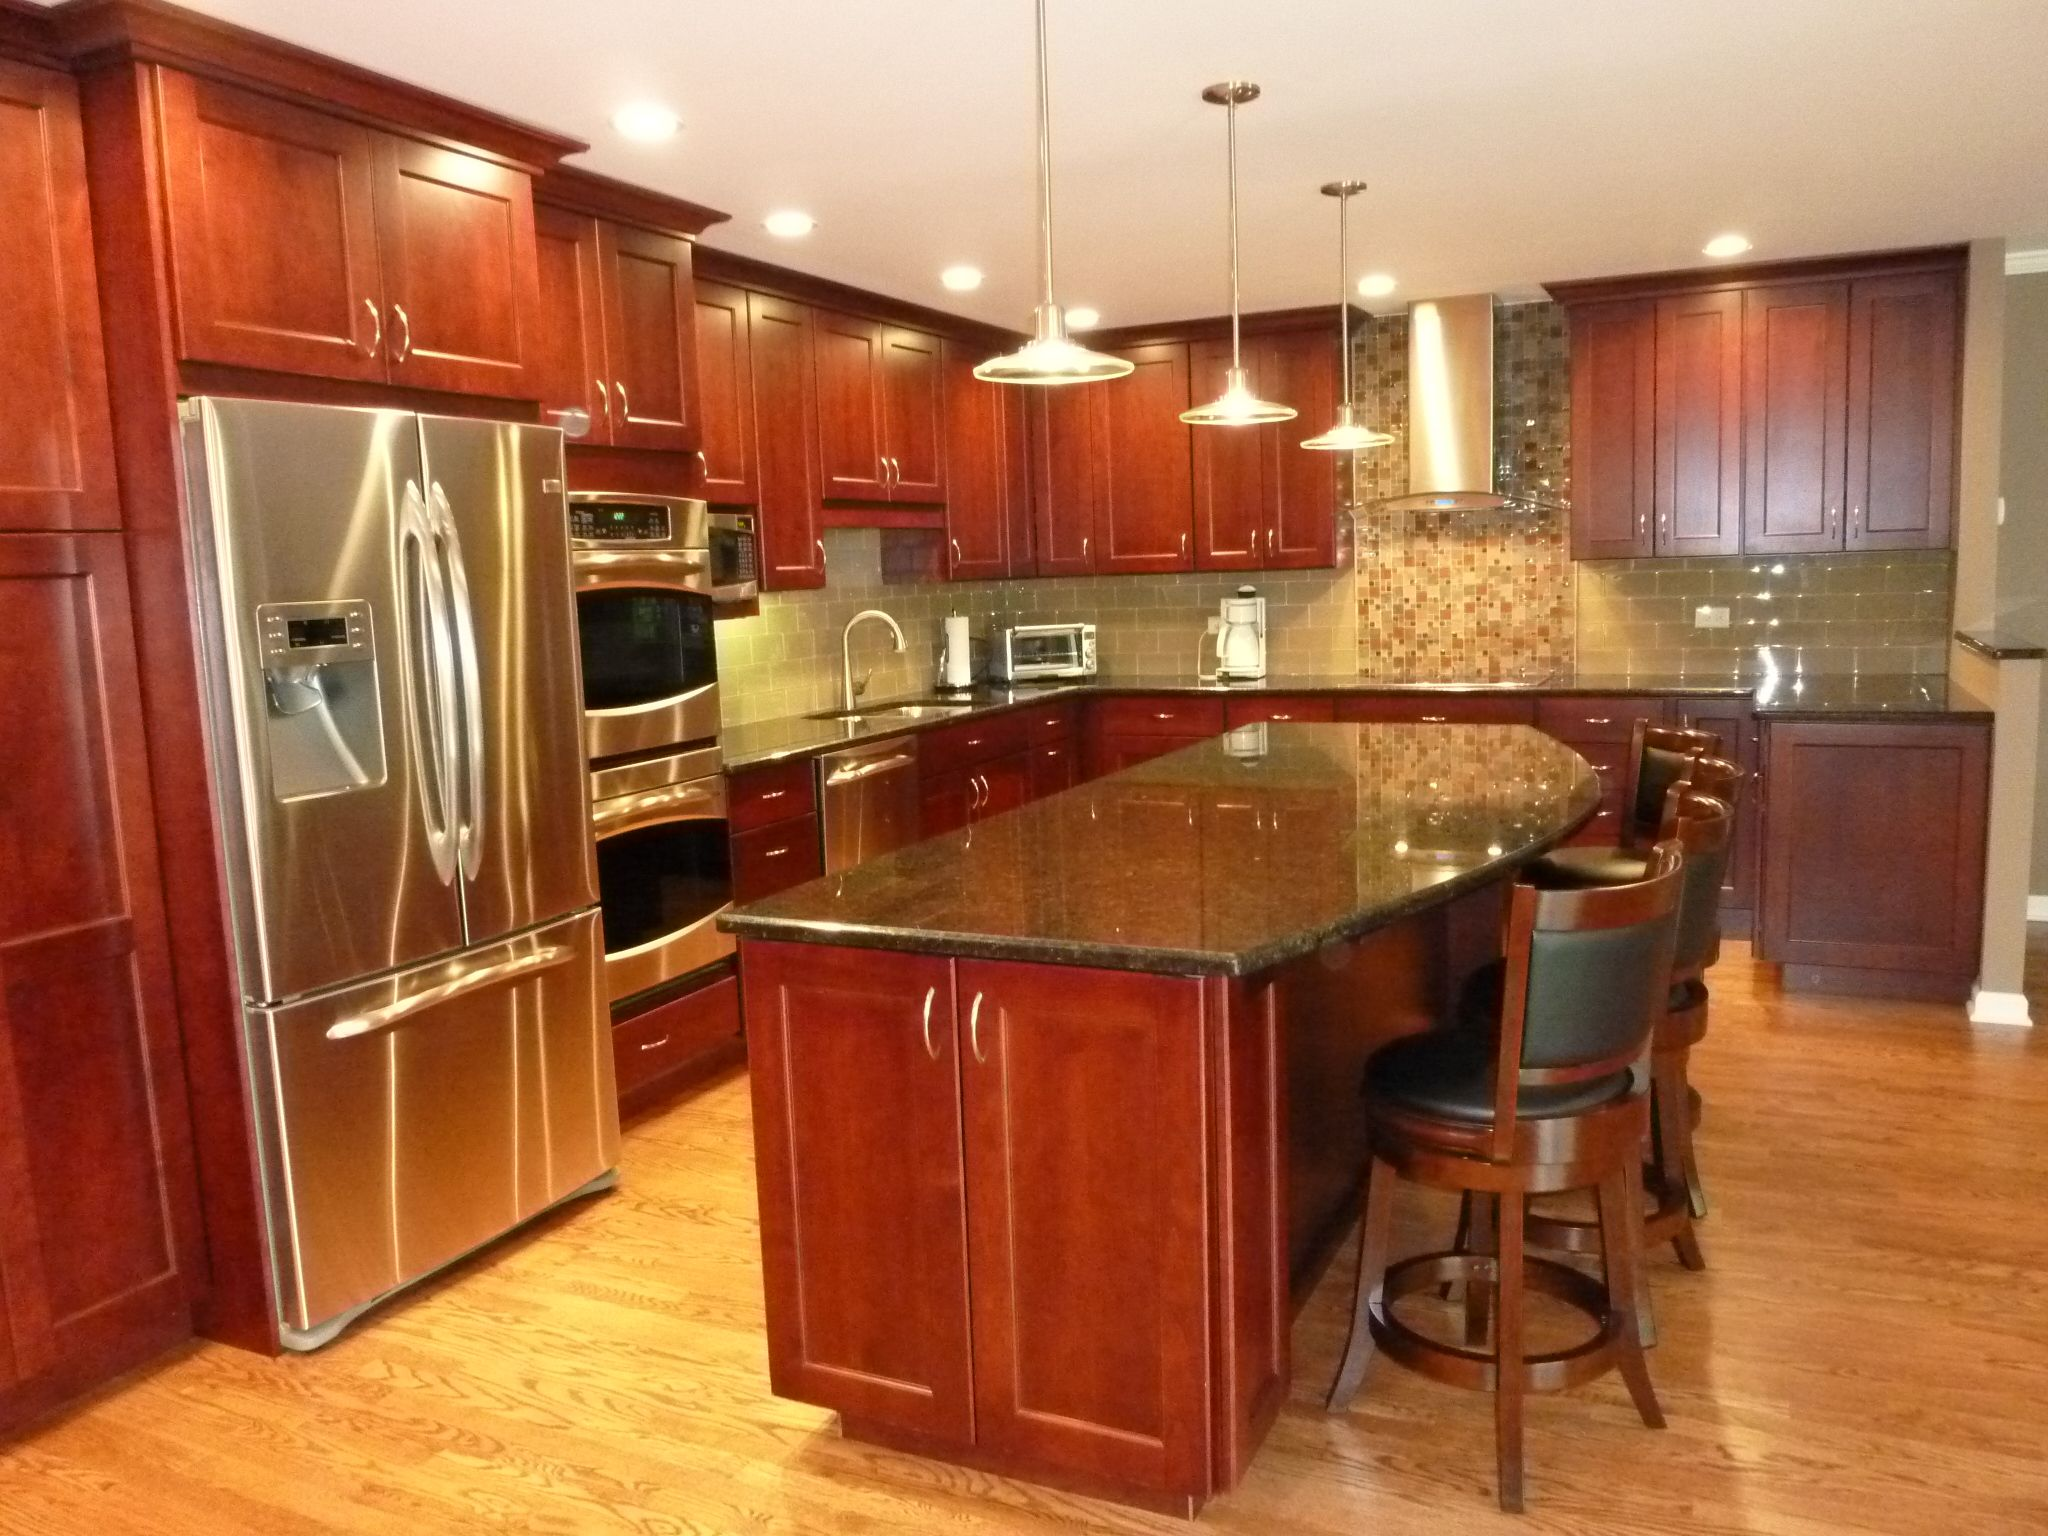 Kitchen in Rolling Meadows. Cherry look with dark